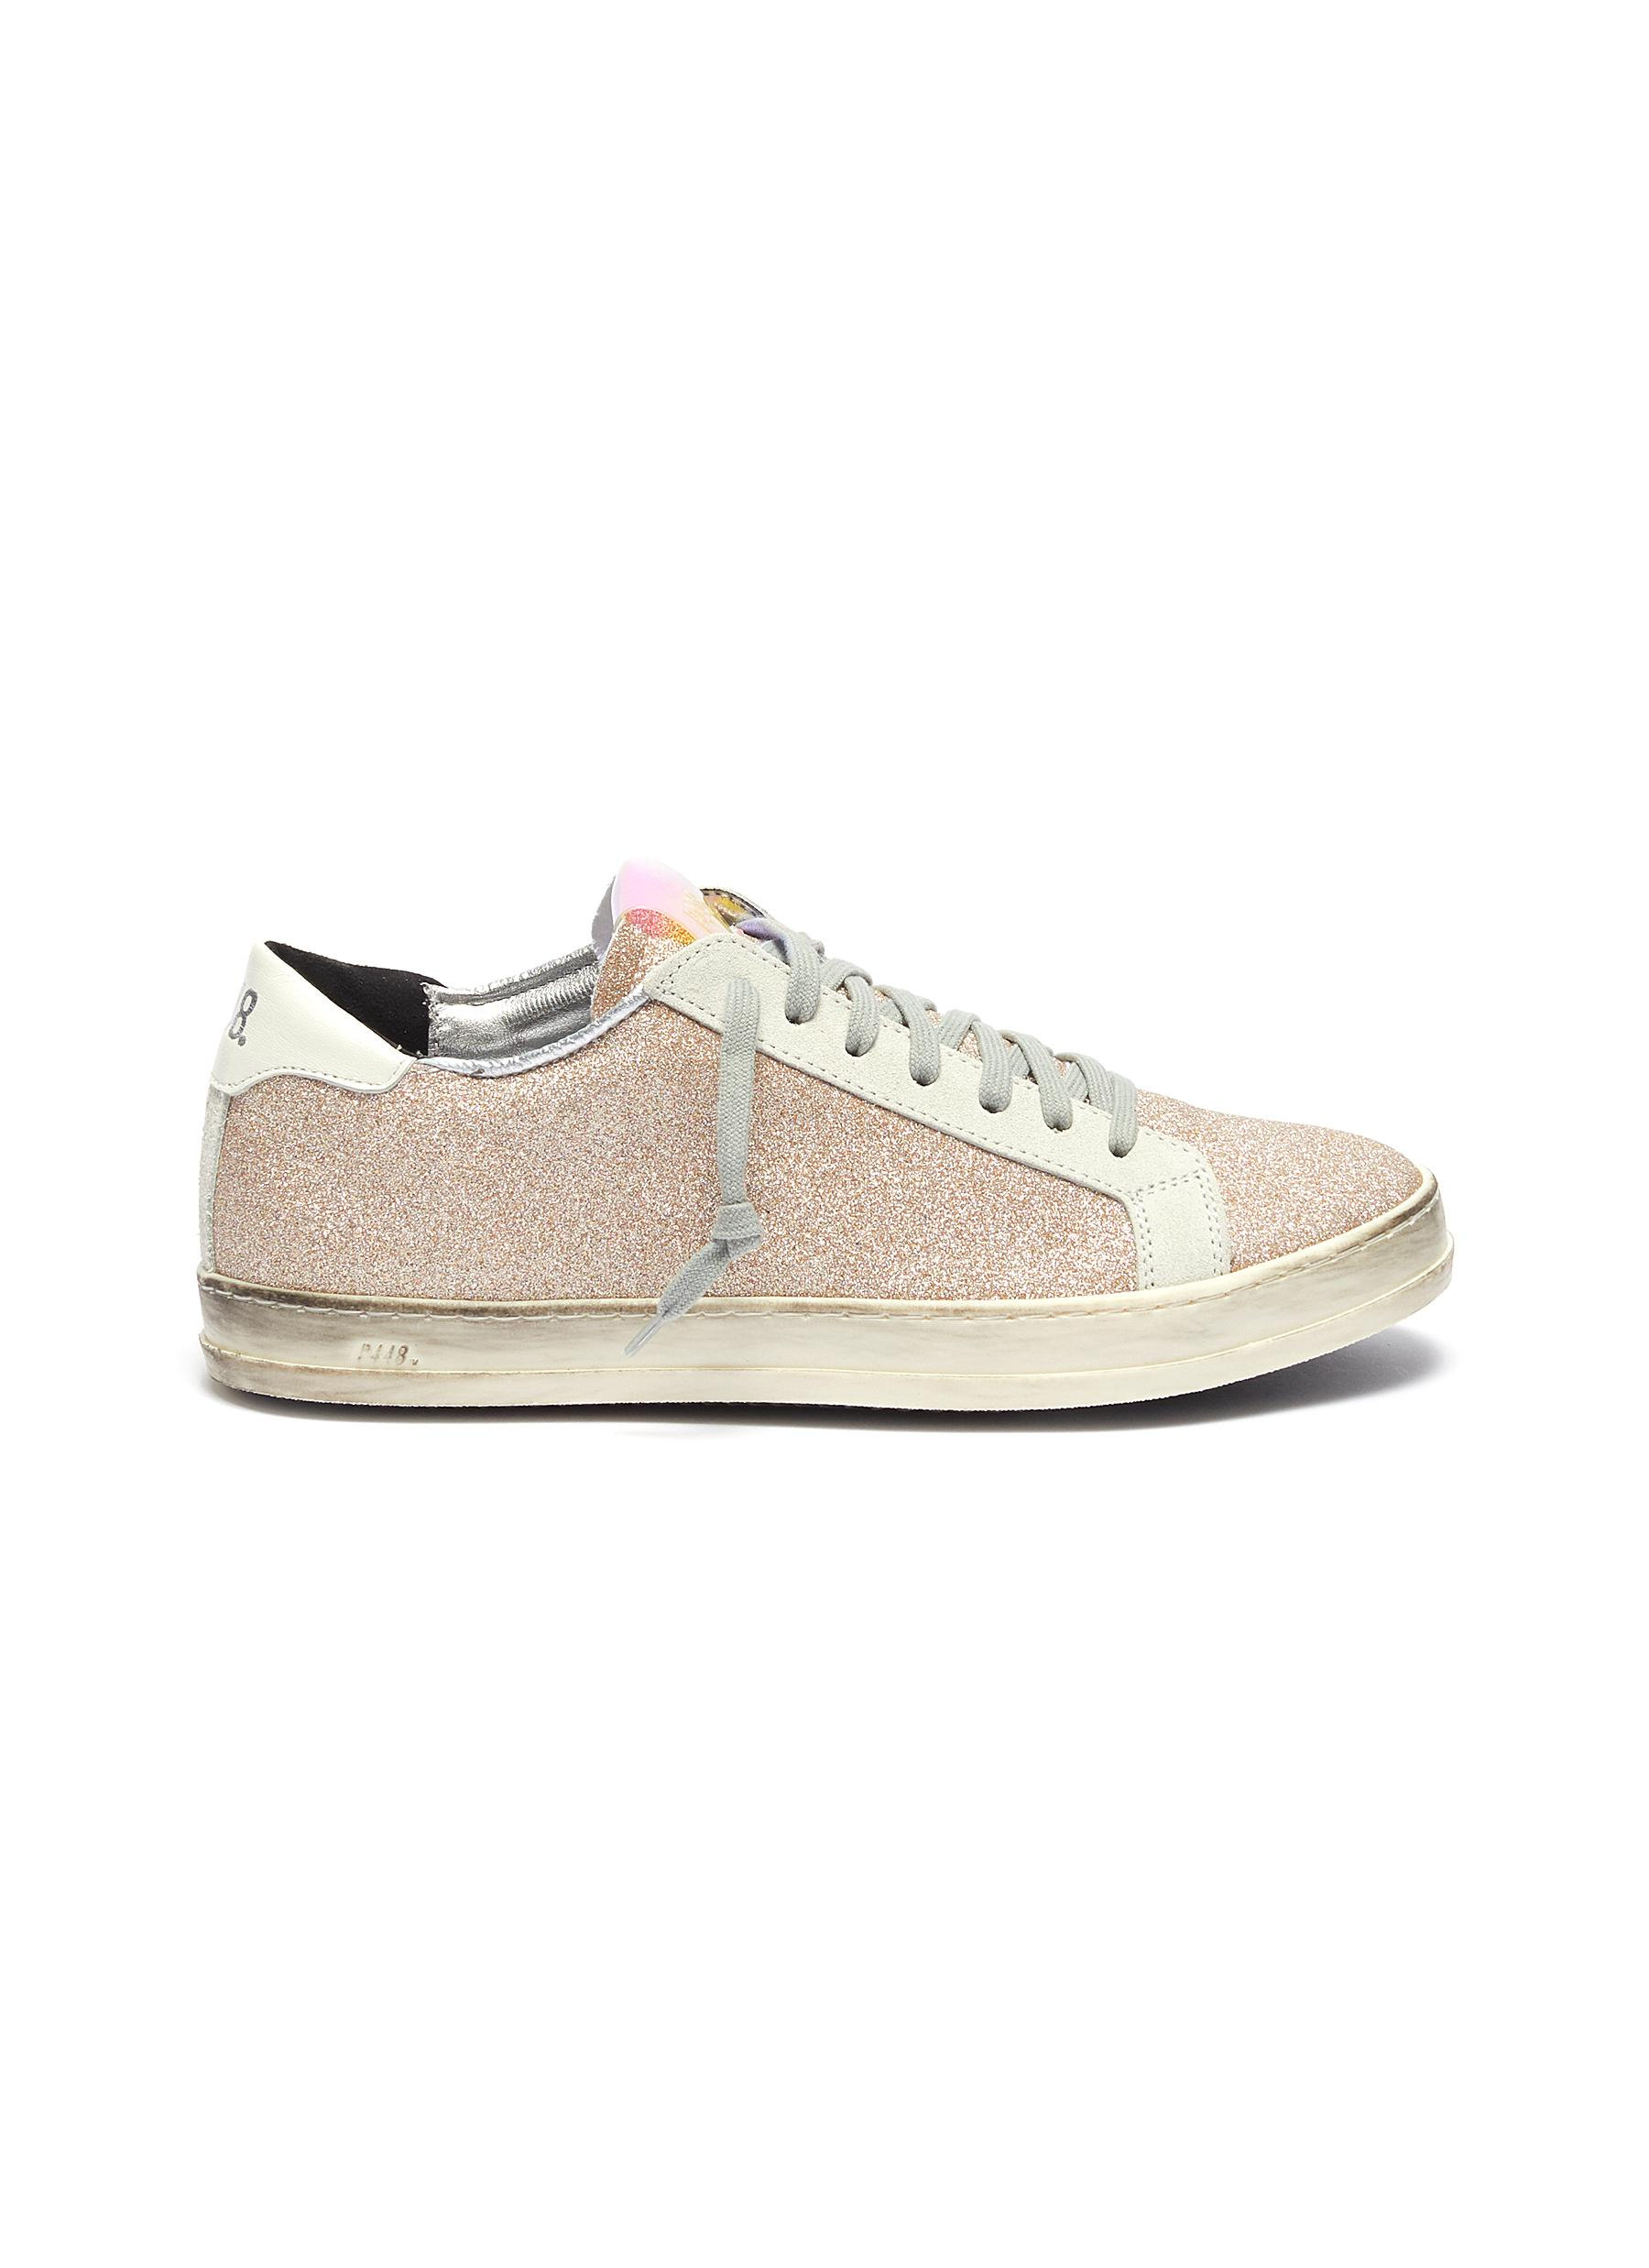 John distressed glitter sneakers by P448